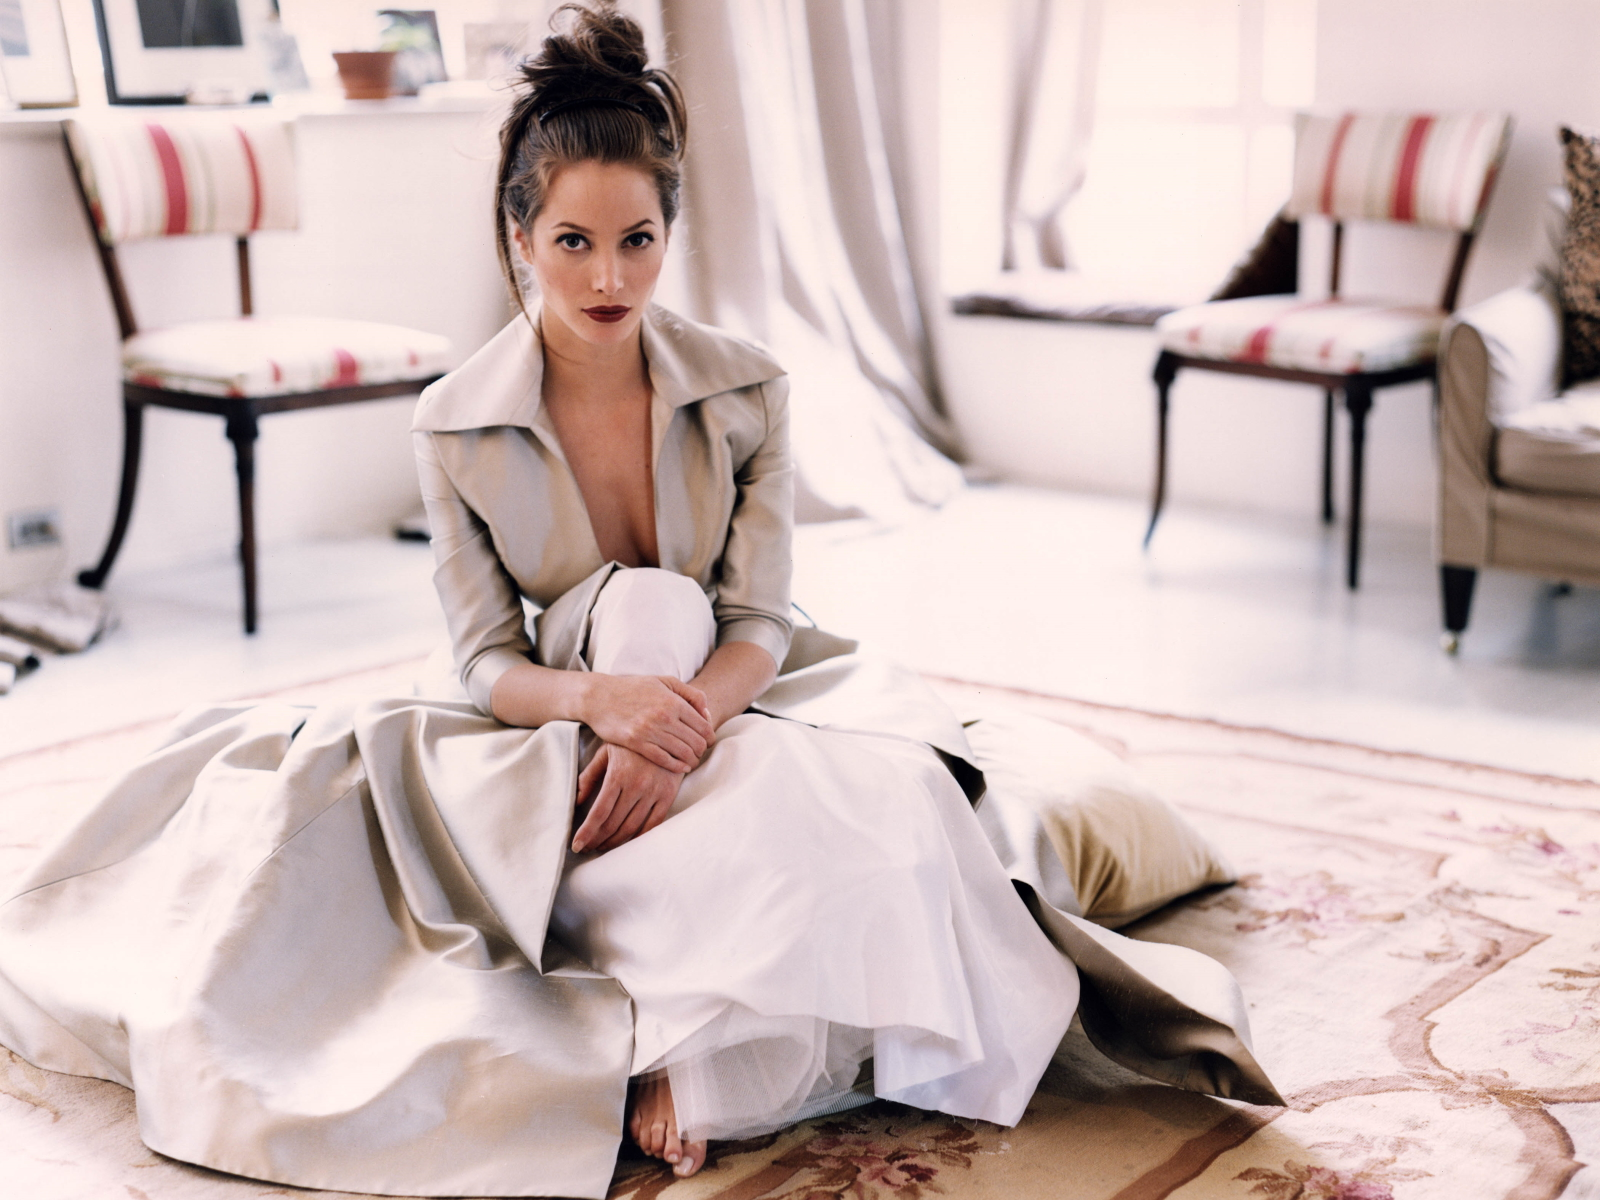 Ralph Lauren Wallpaper Hd Christy Turlington Wallpaper And Background Image